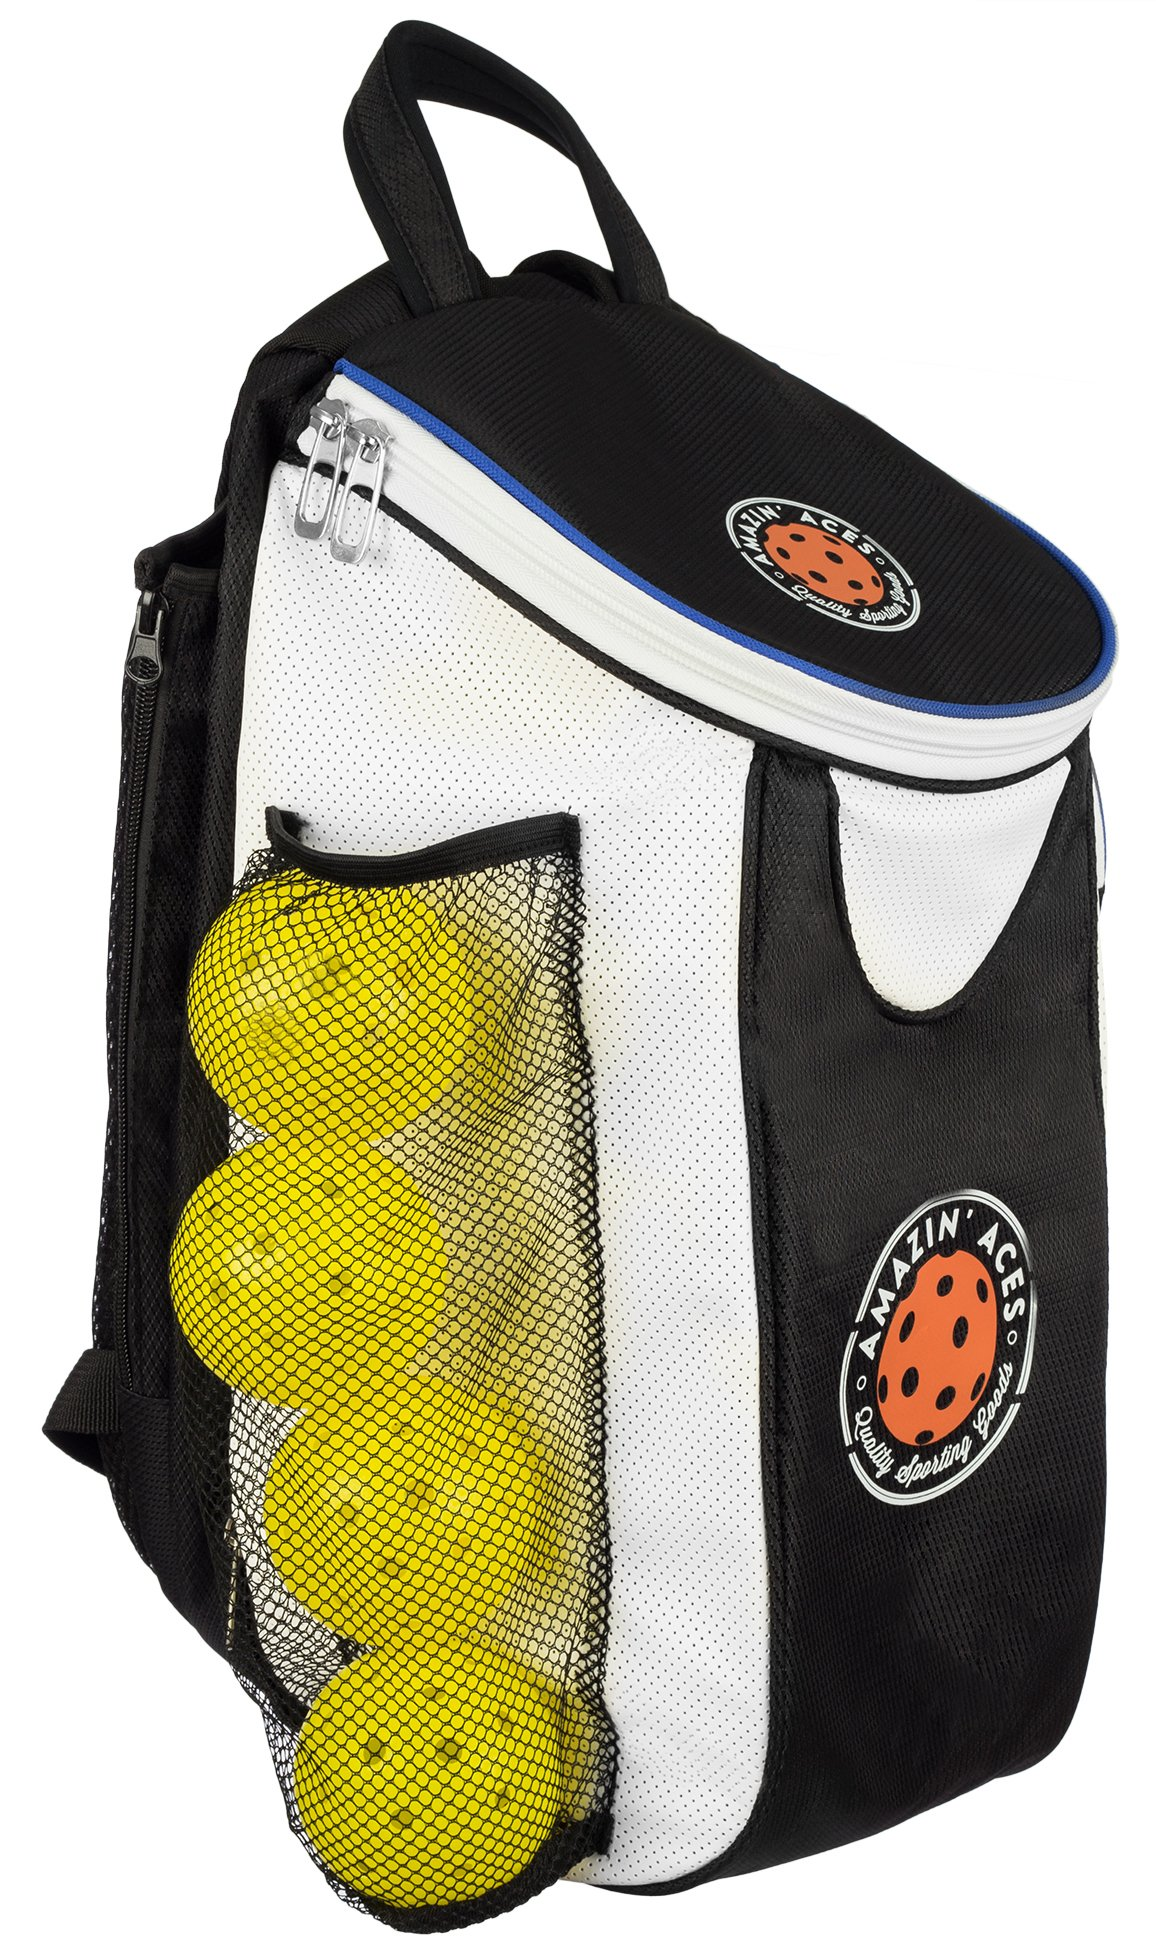 Amazin' Aces Premium Pickleball Backpack | Bag Features Pickleball Holder/Sleeve | Pack Fits Multiple Paddles | Convenient Pockets For Phone, Keys, Wallet | Padded Back & Straps For Added Comfort by Amazin' Aces